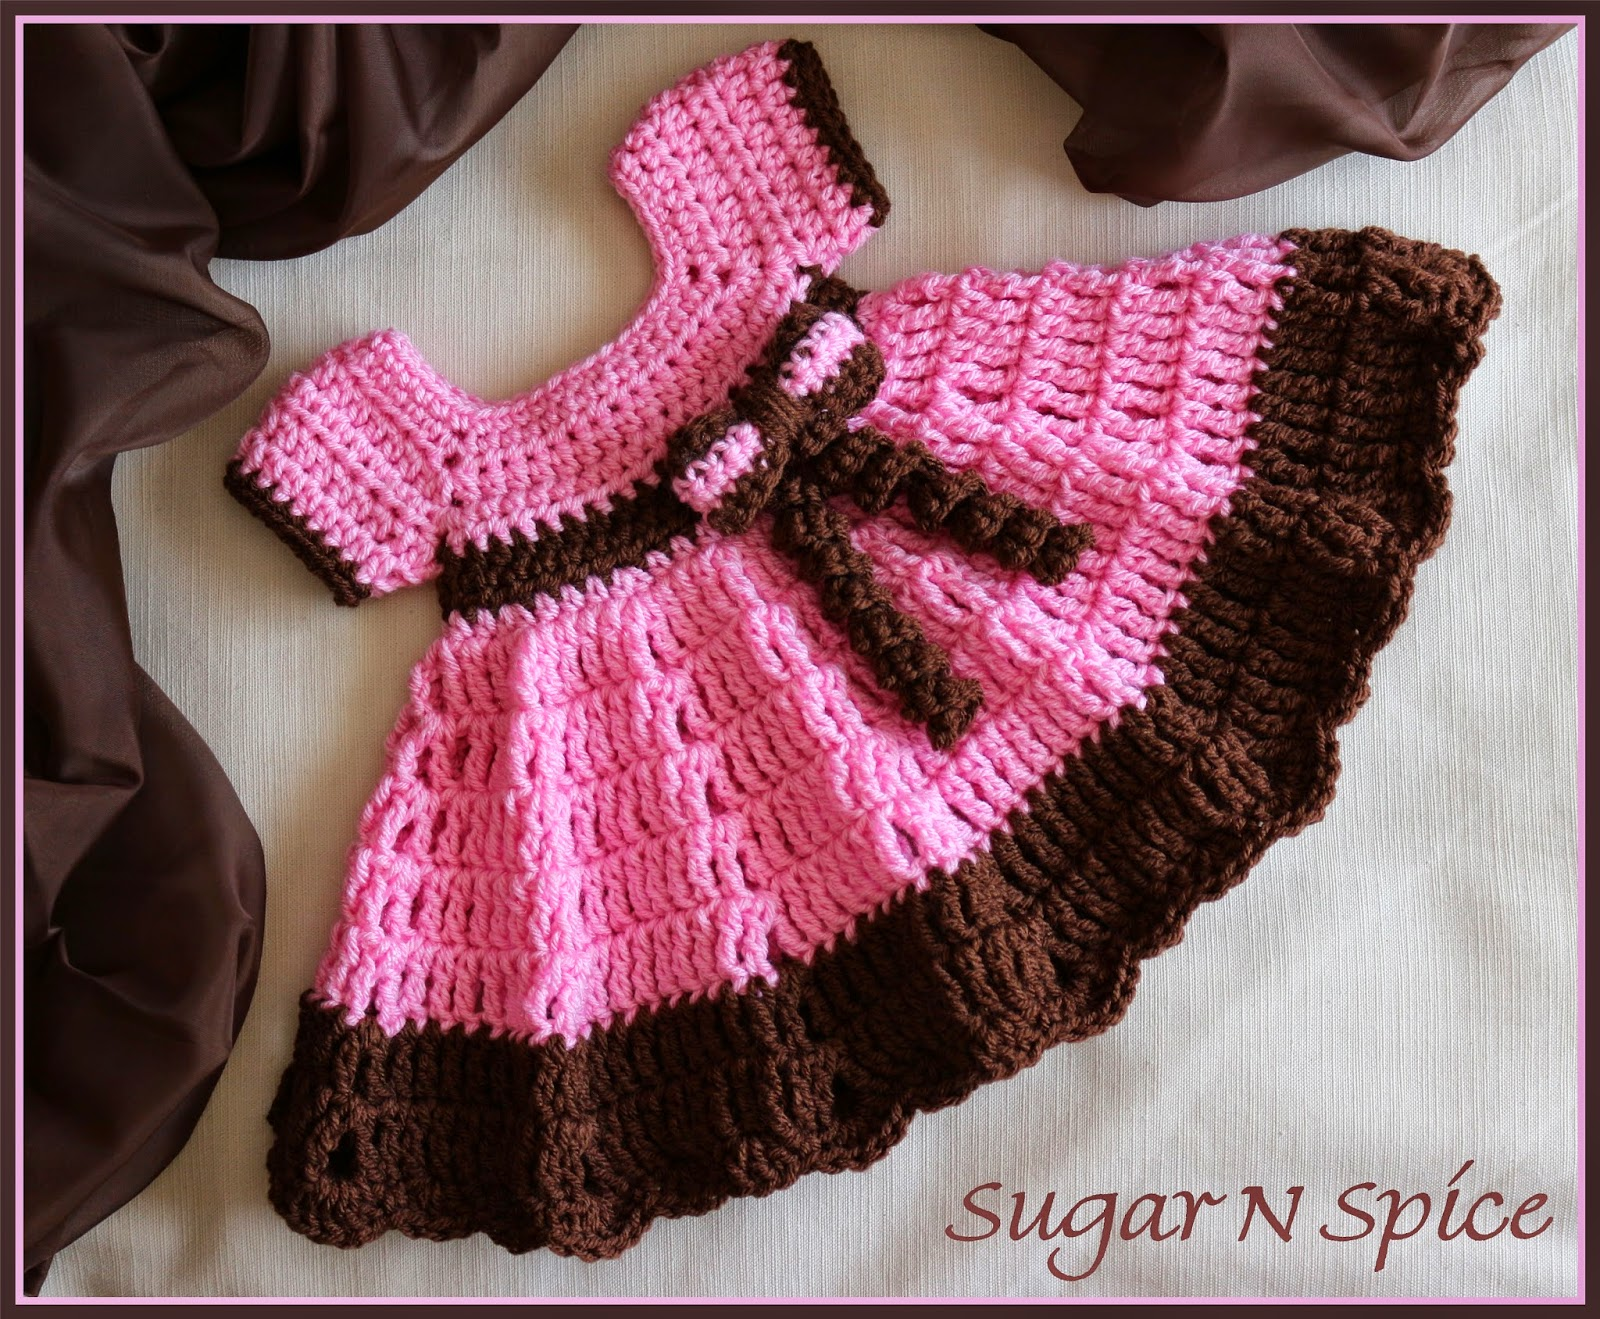 Easy Crochet Baby Dress Patterns Perfect For Beginner Crocheters